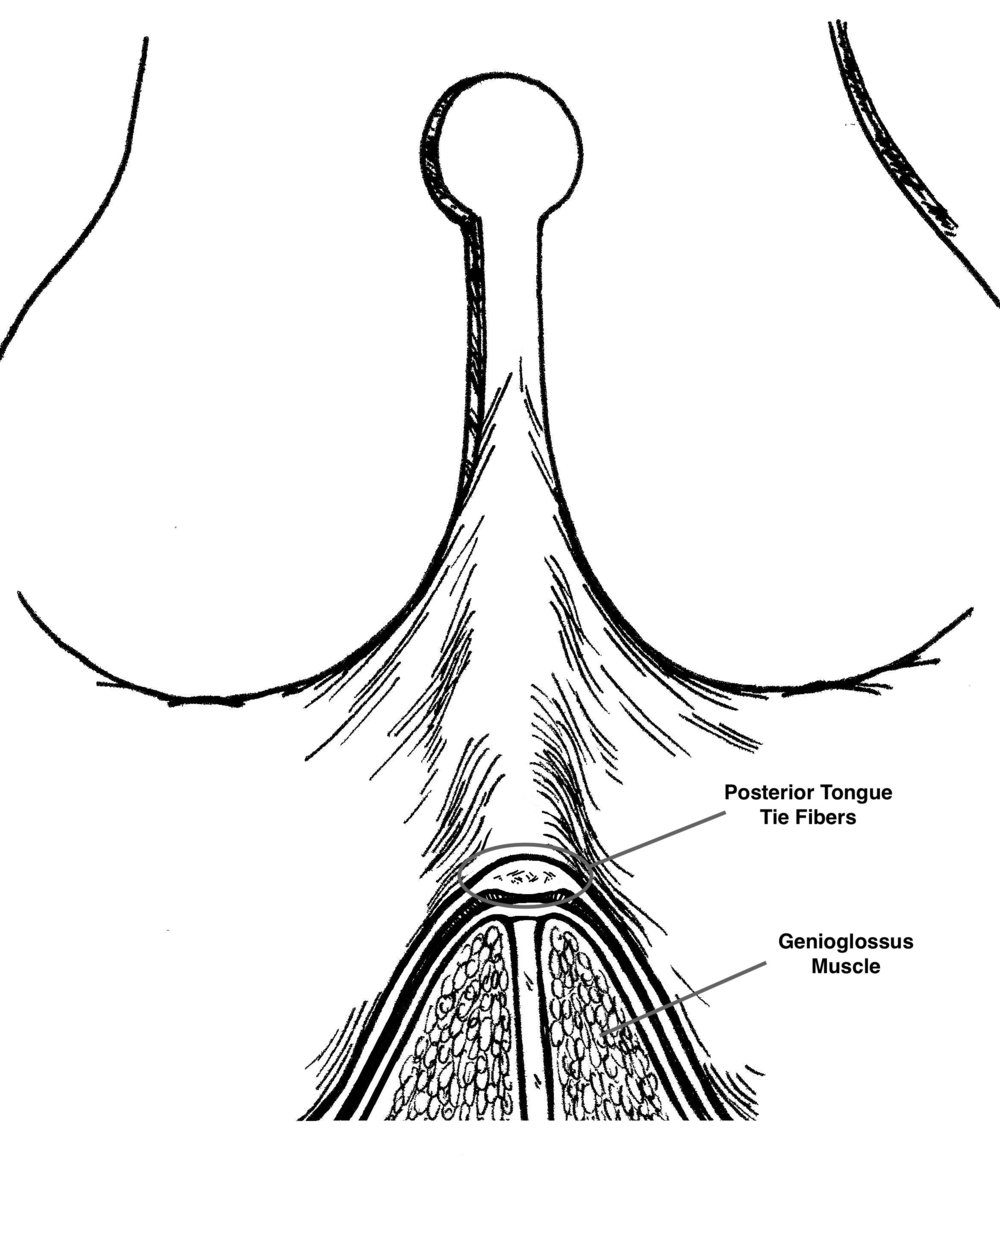 The Misunderstanding of Posterior Tongue Tie Anatomy and Release ...